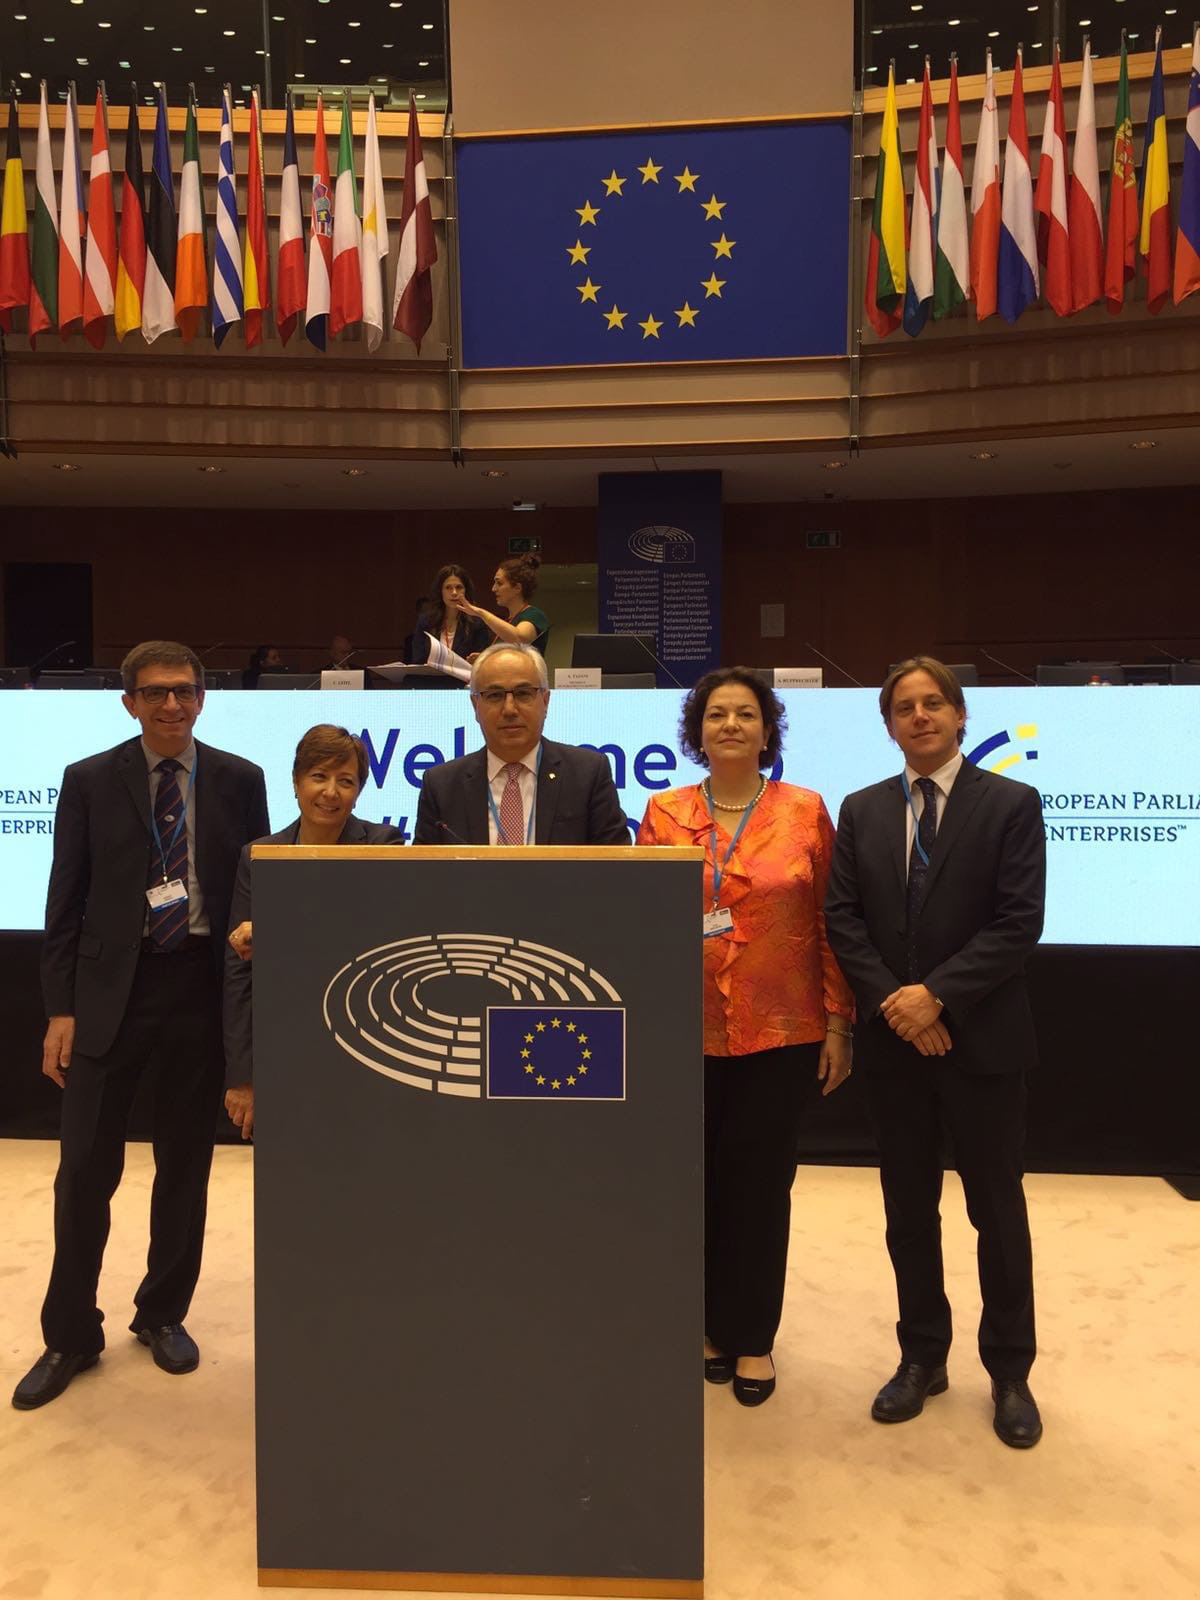 Immagine President Pozza Head of the Italian Delegation speaks to the European Enterprises Parliament 2018 in Bruxelles